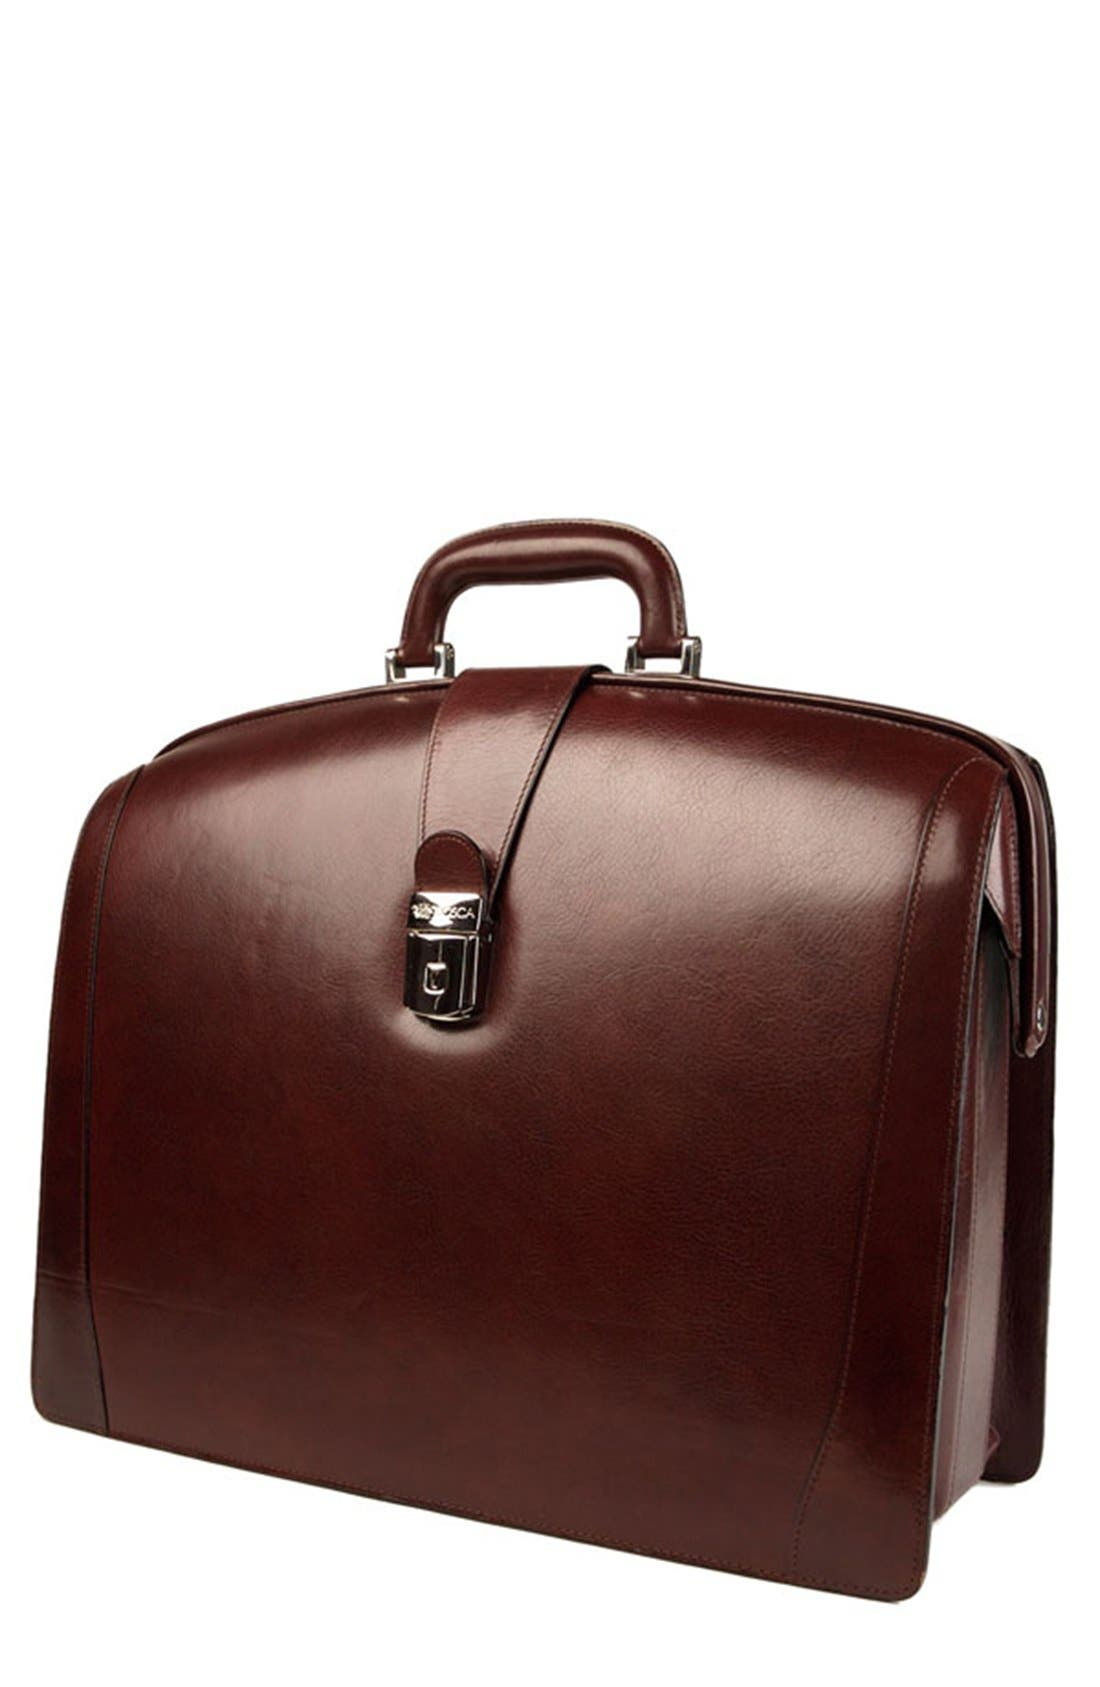 Alternate Image 1 Selected - Bosca Triple Compartment Leather Briefcase